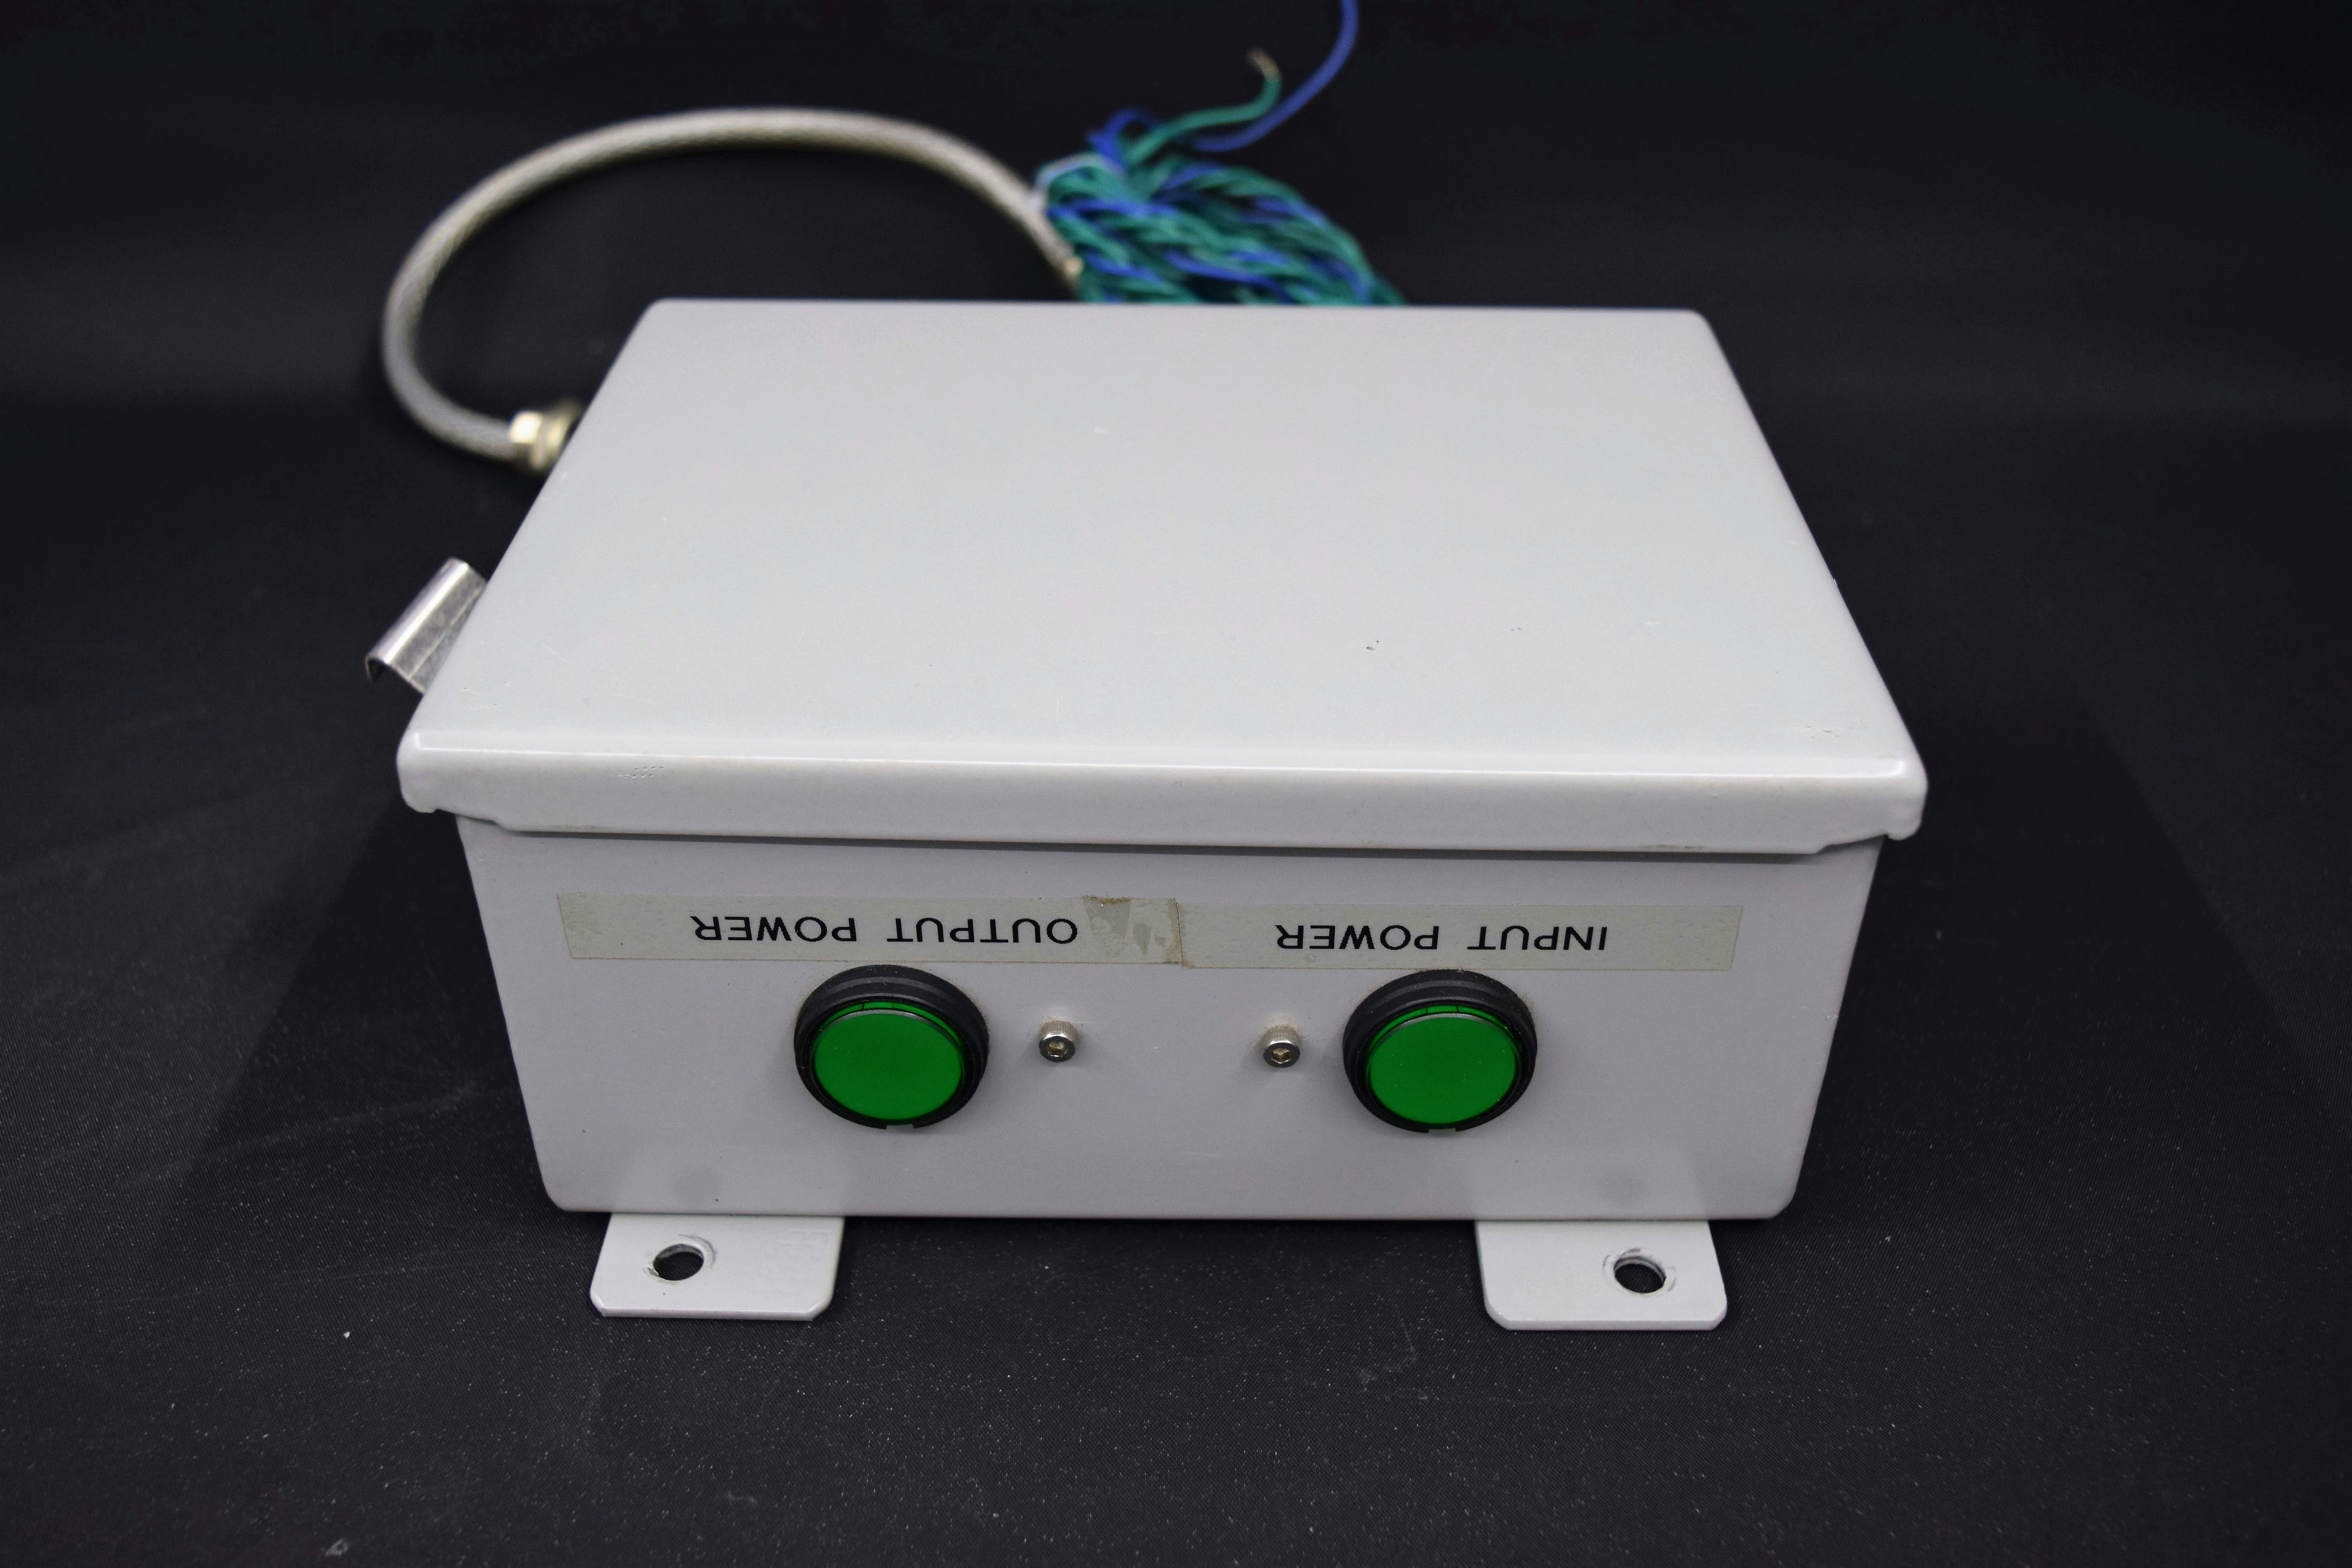 Image of Flow-Switch-Enclosure-w-Input-Output-Power-Button-Indicators by New Life Scientific Inc.